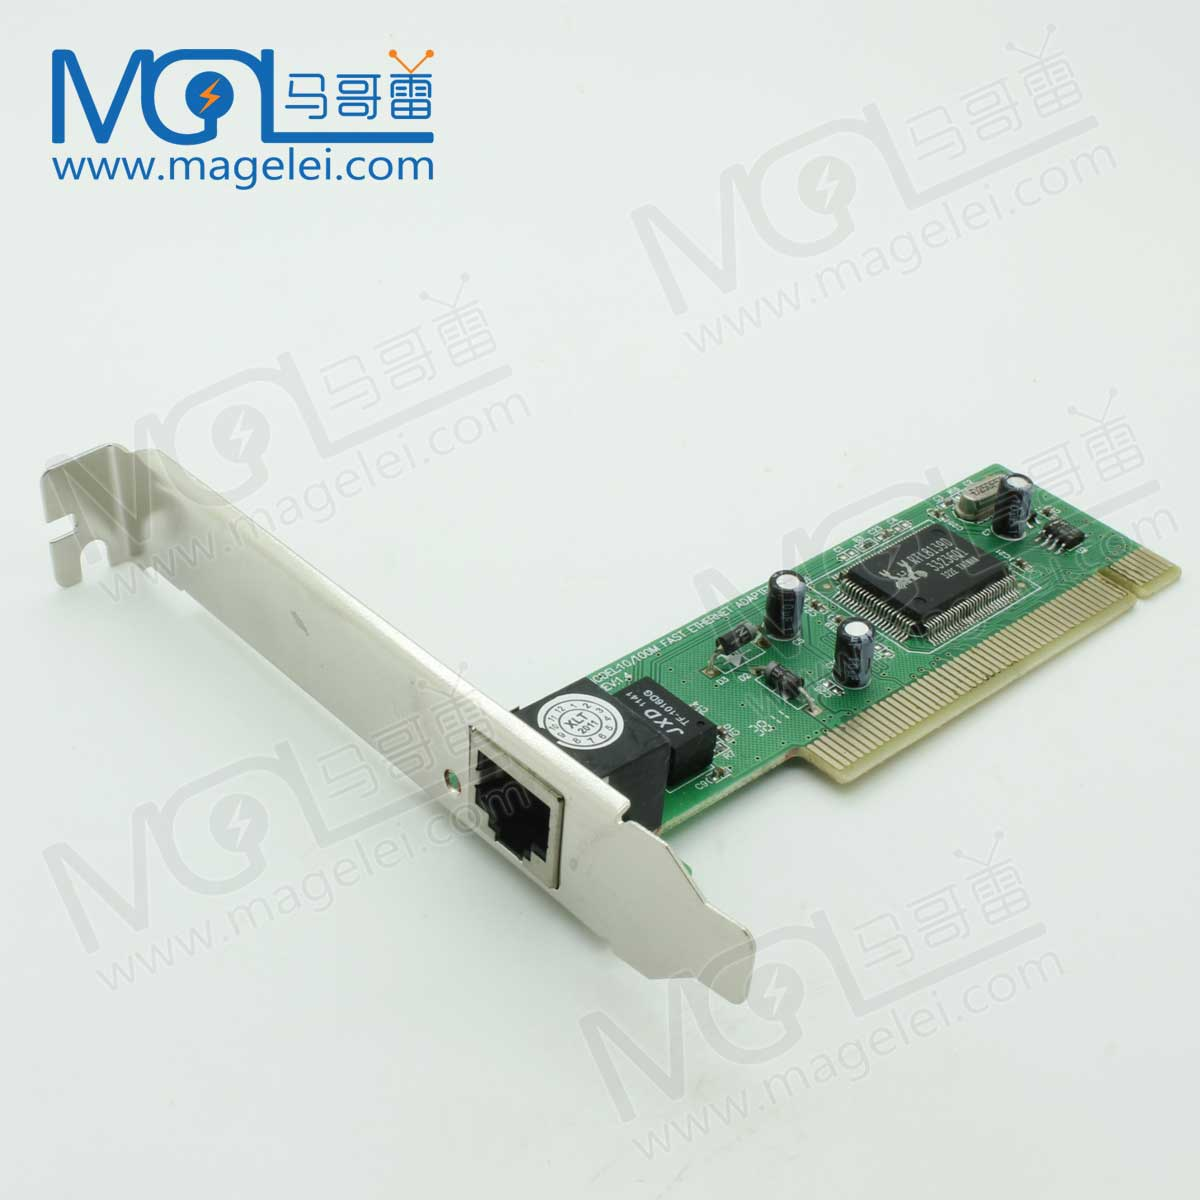 1000M Gigabit Network Ethernet PCI LAN Card adapter